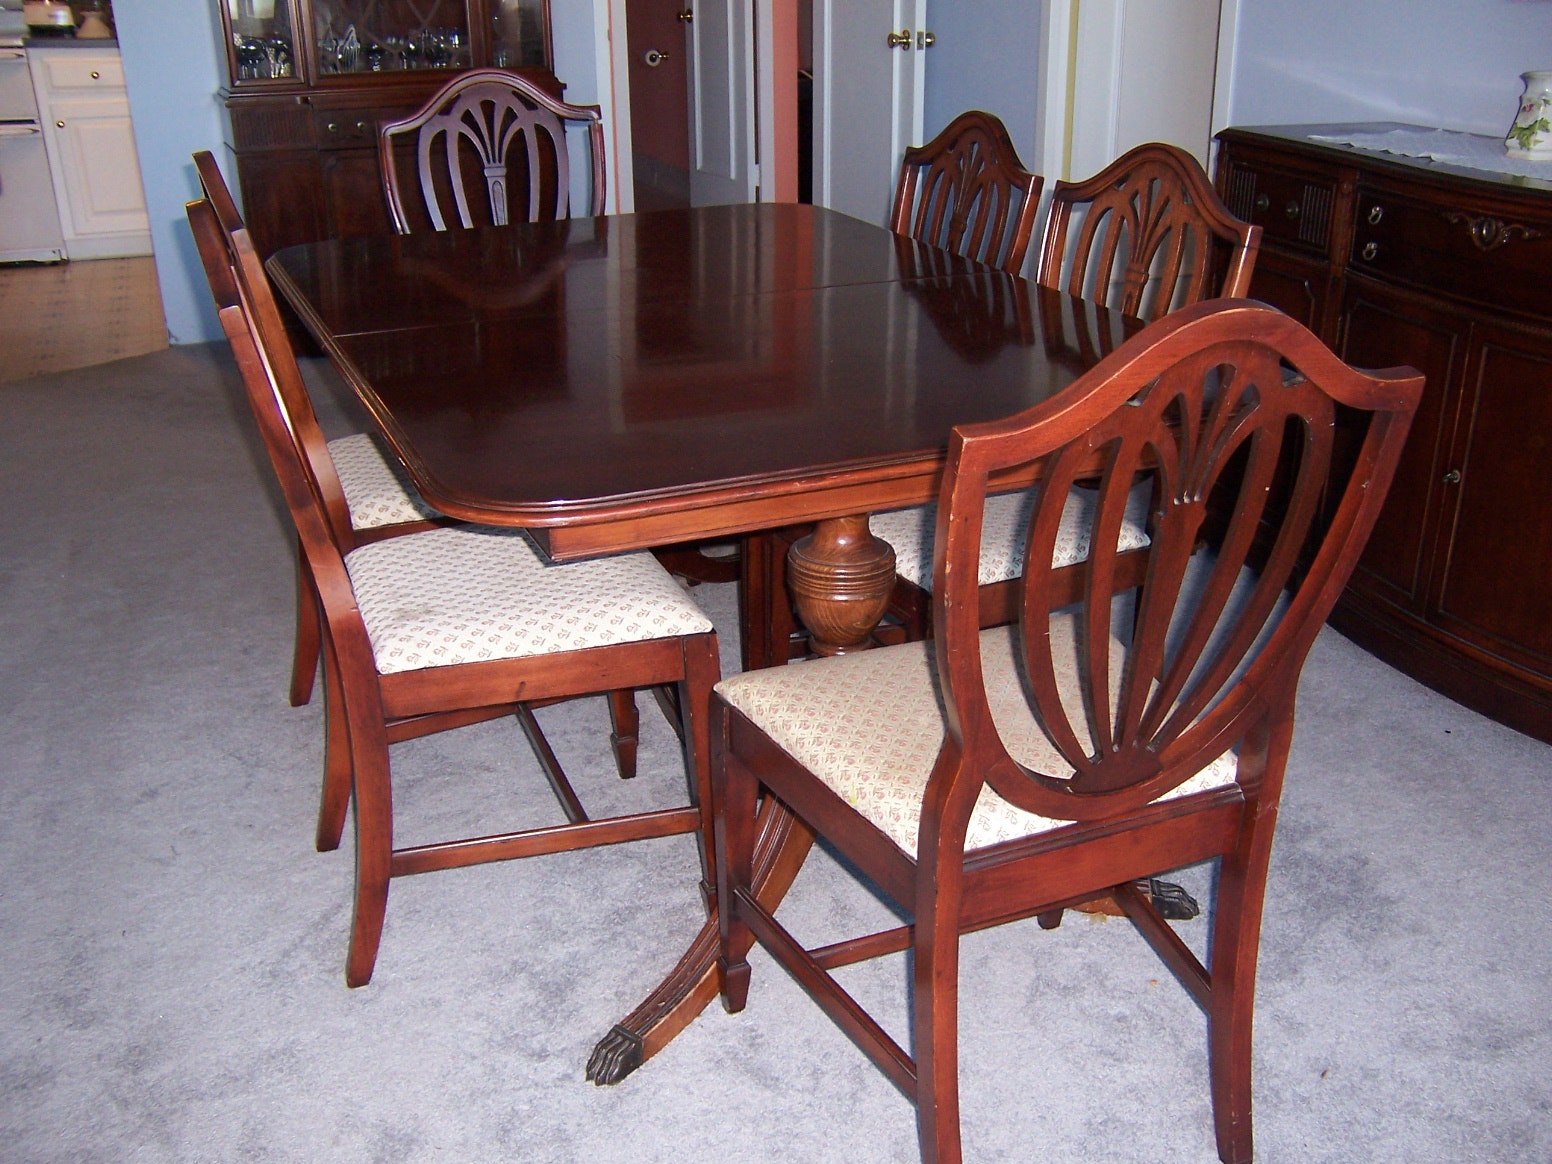 Vintage Duncan Phyfe Style Dining Table and Chairs EBTH